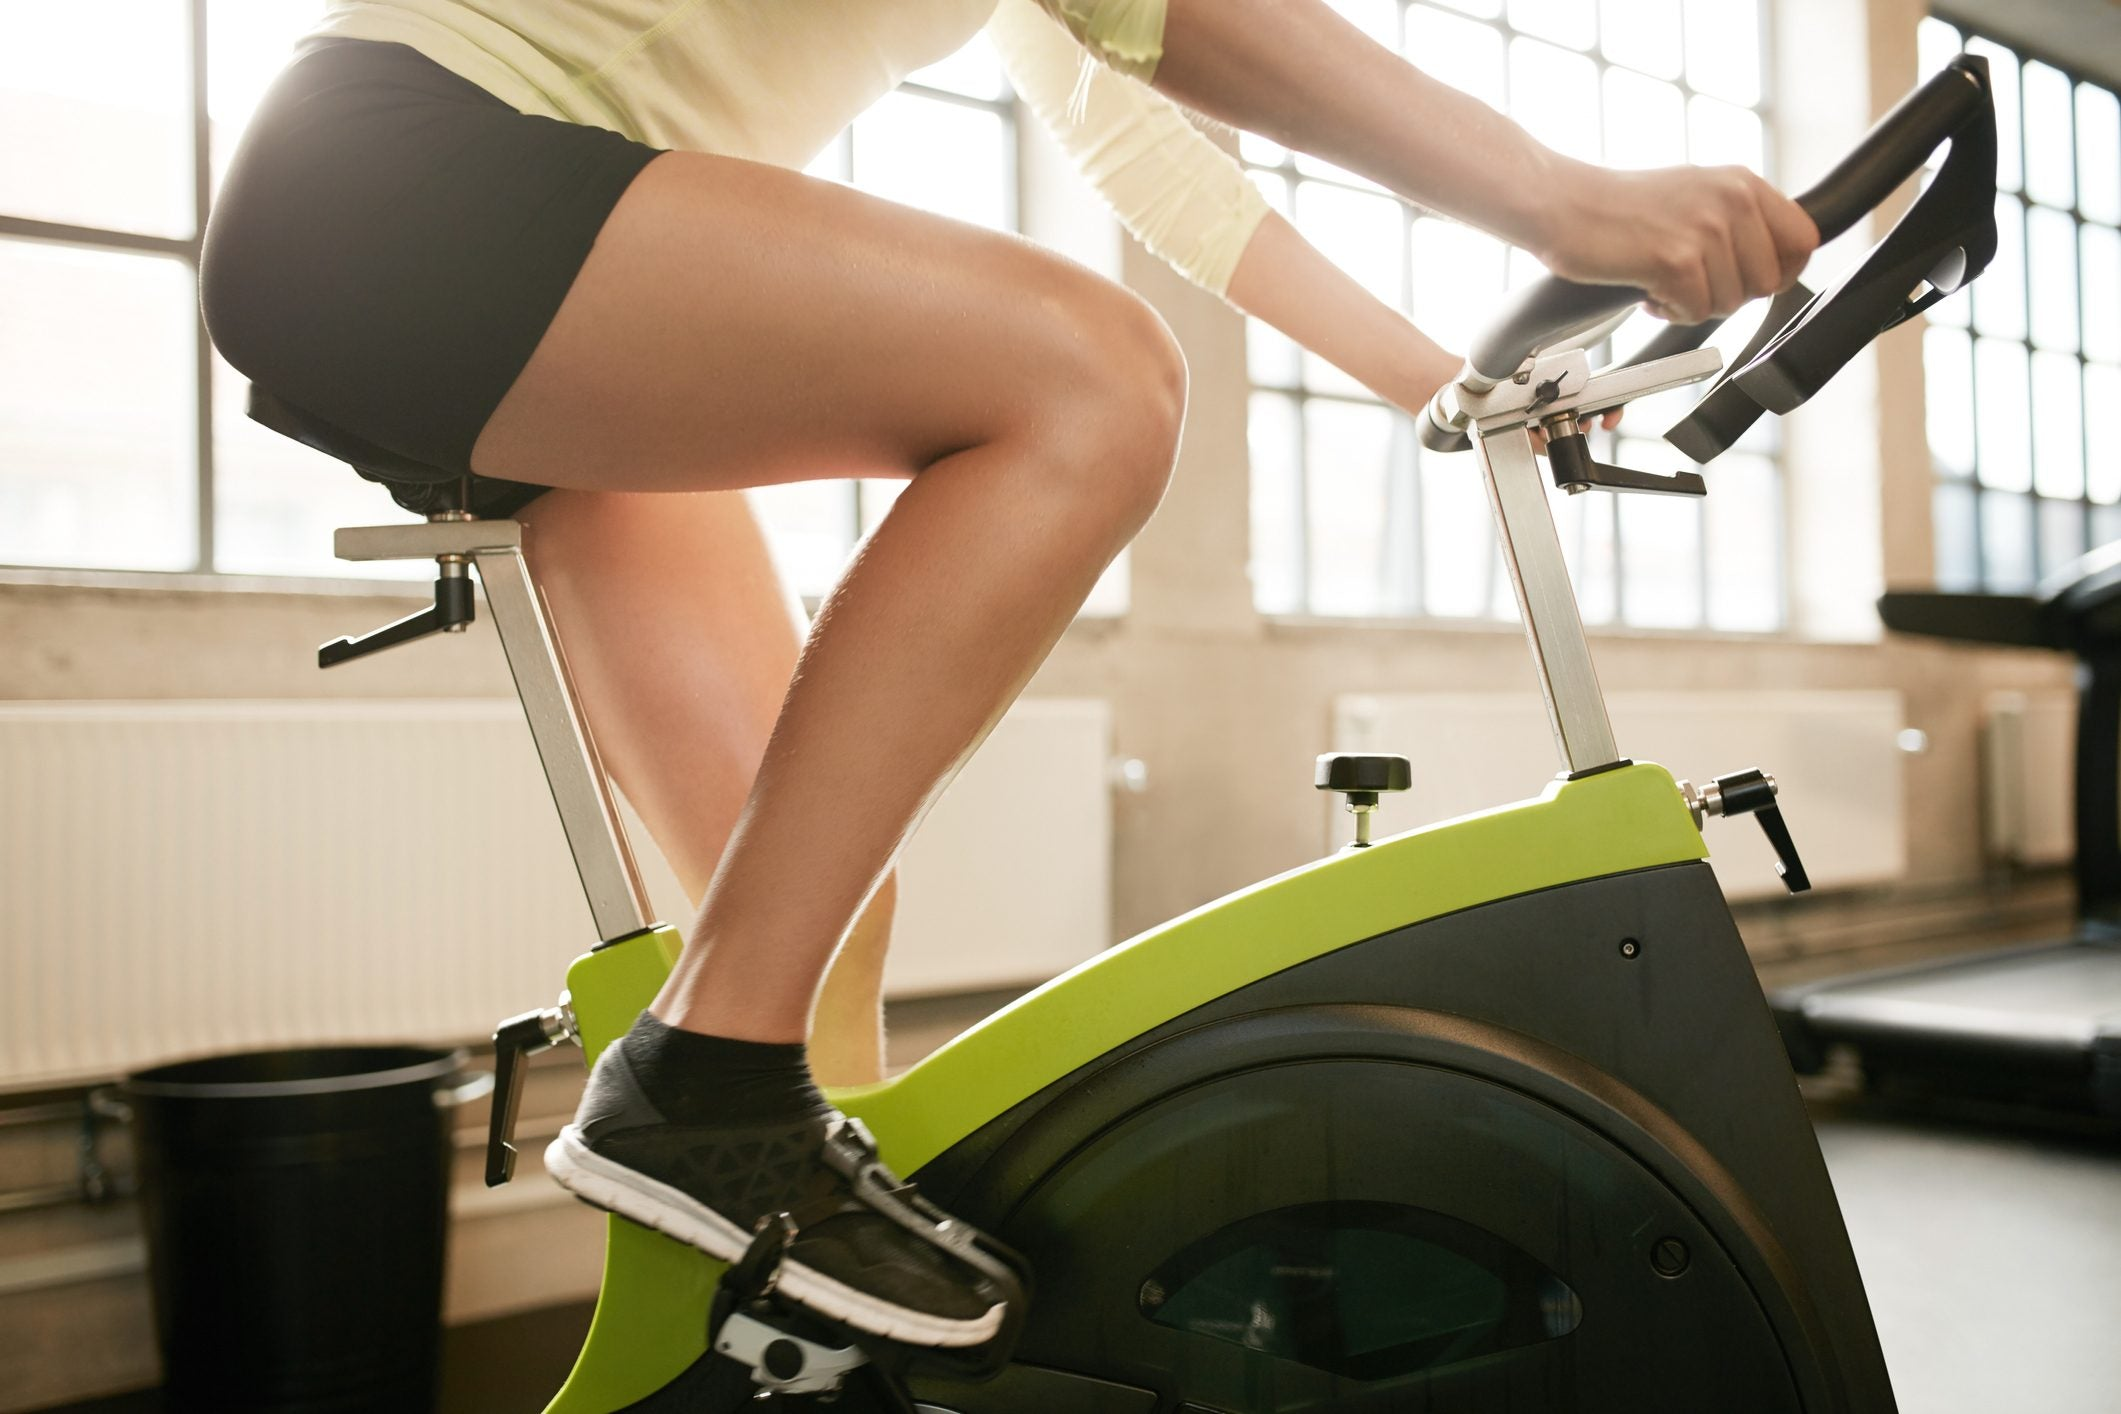 How to protect your knees when cycling